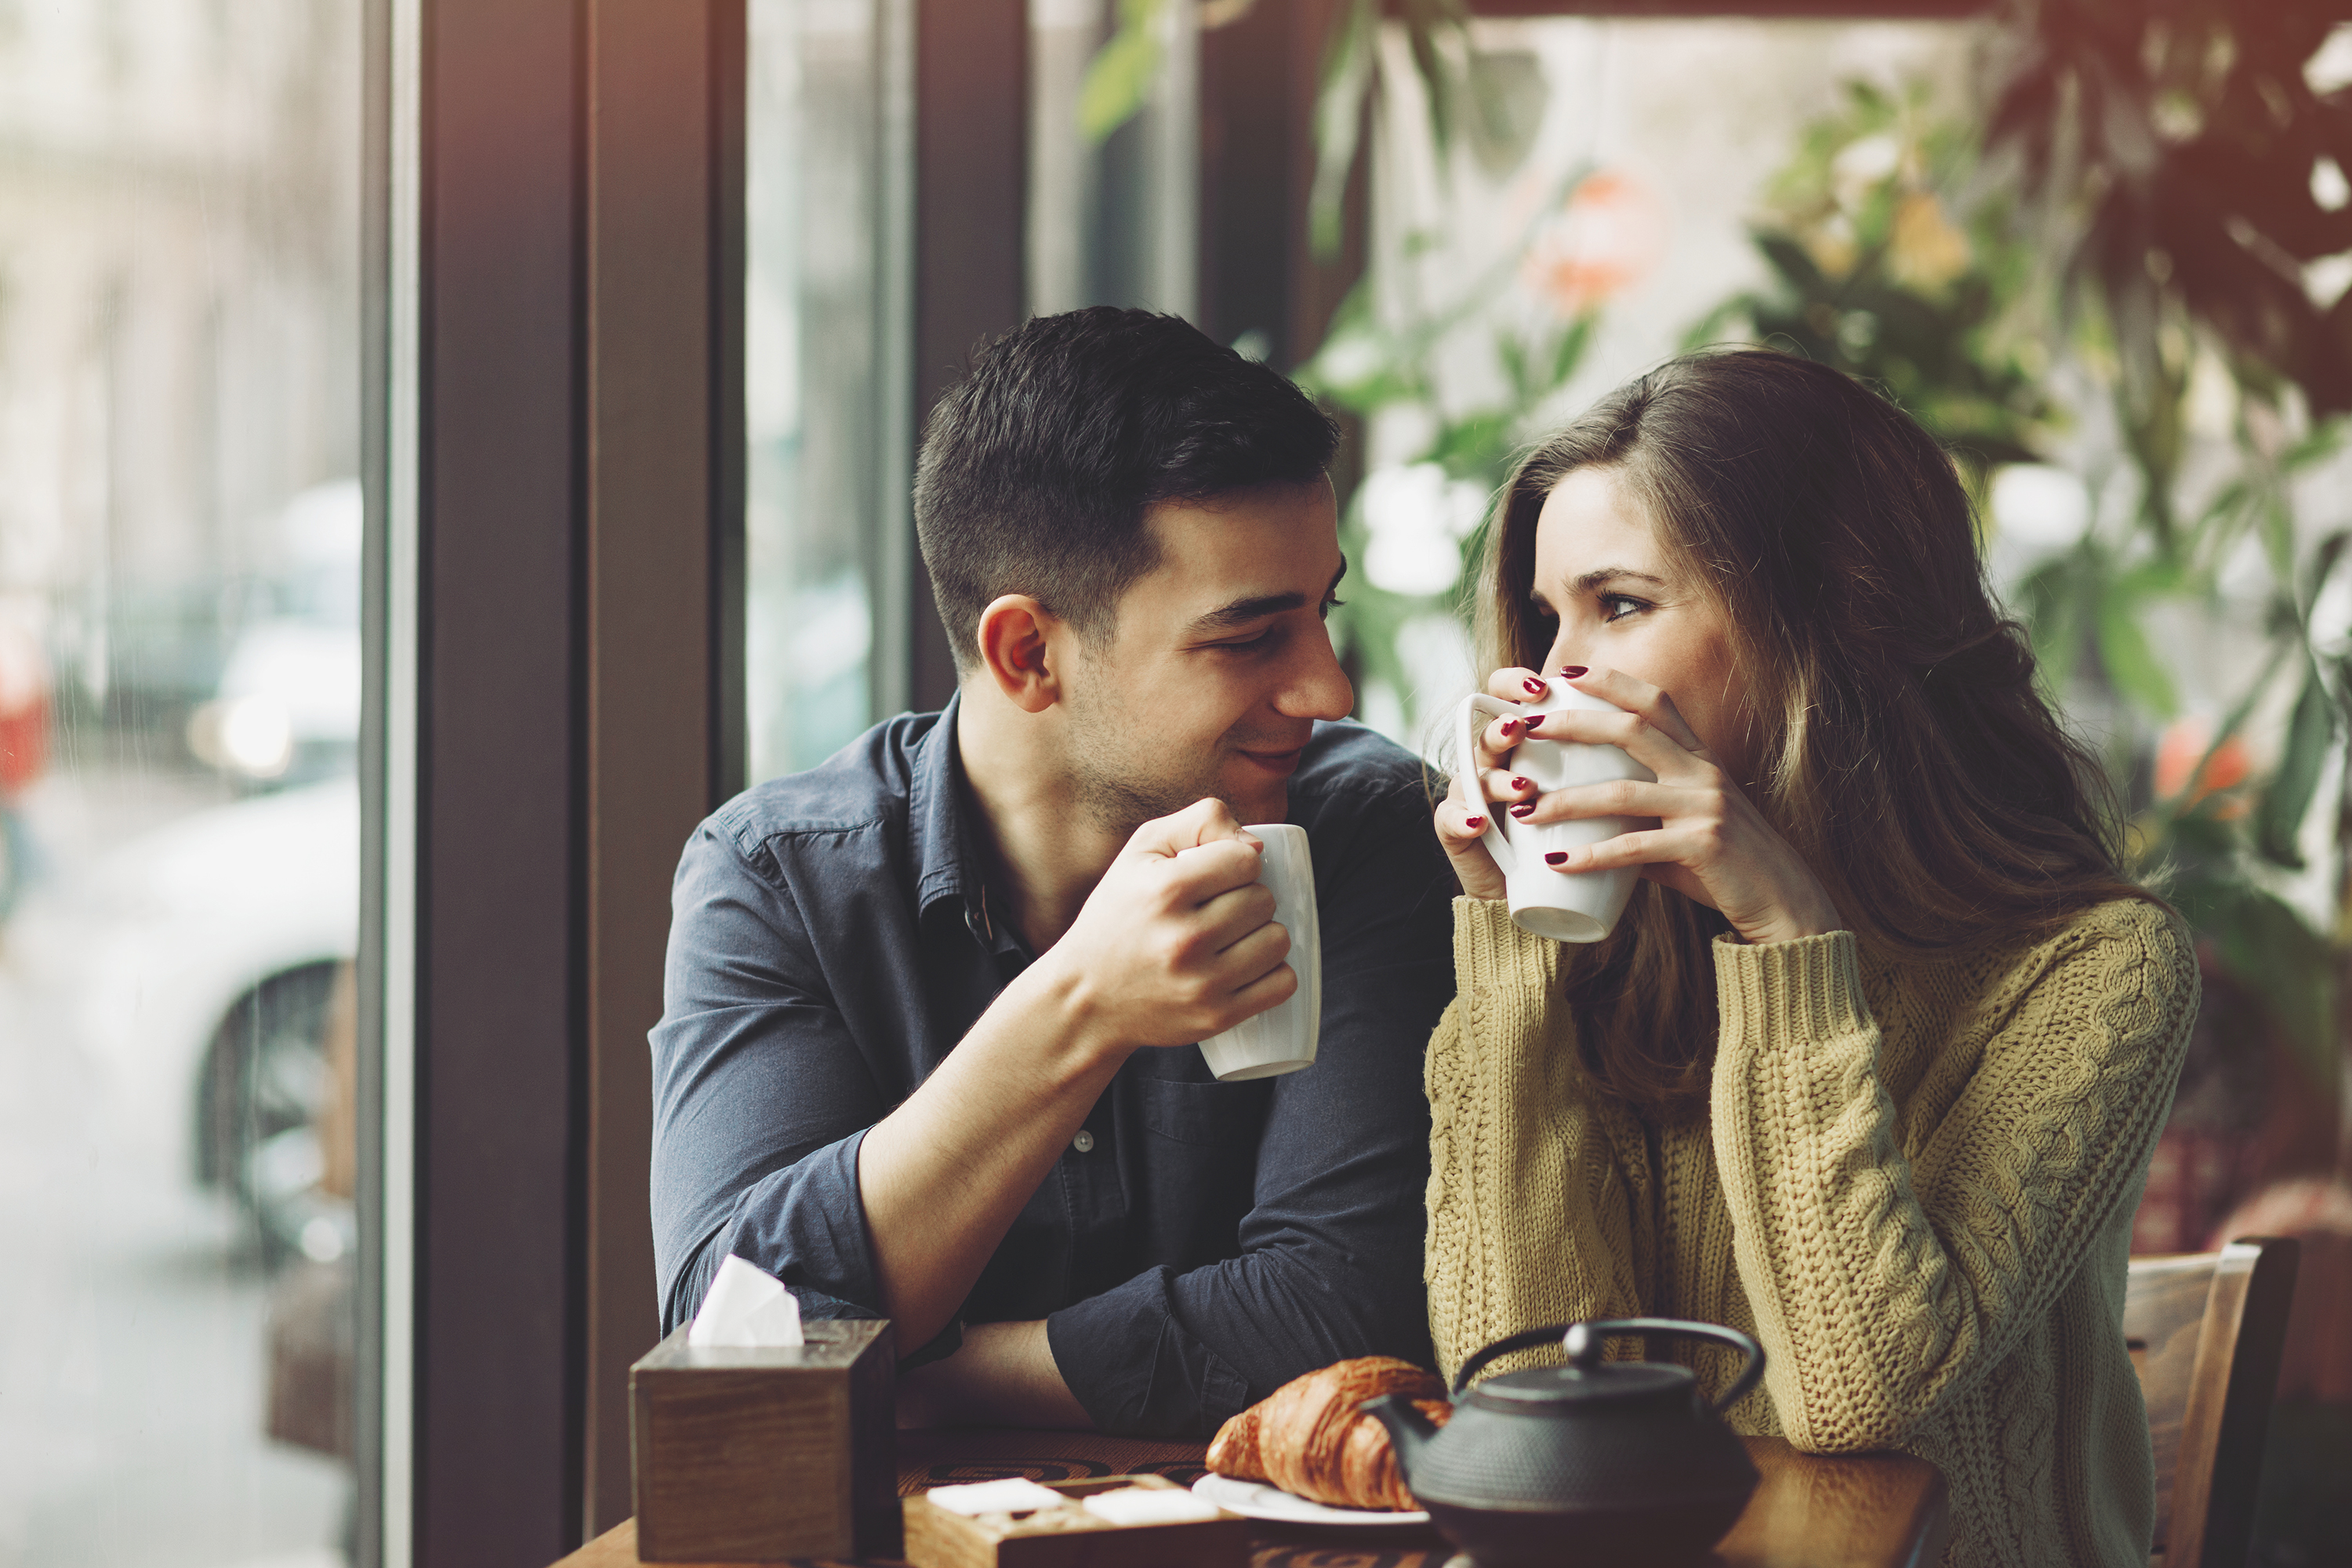 Online Dating: How Do I Know If She Had A Good Time At Our First Date?